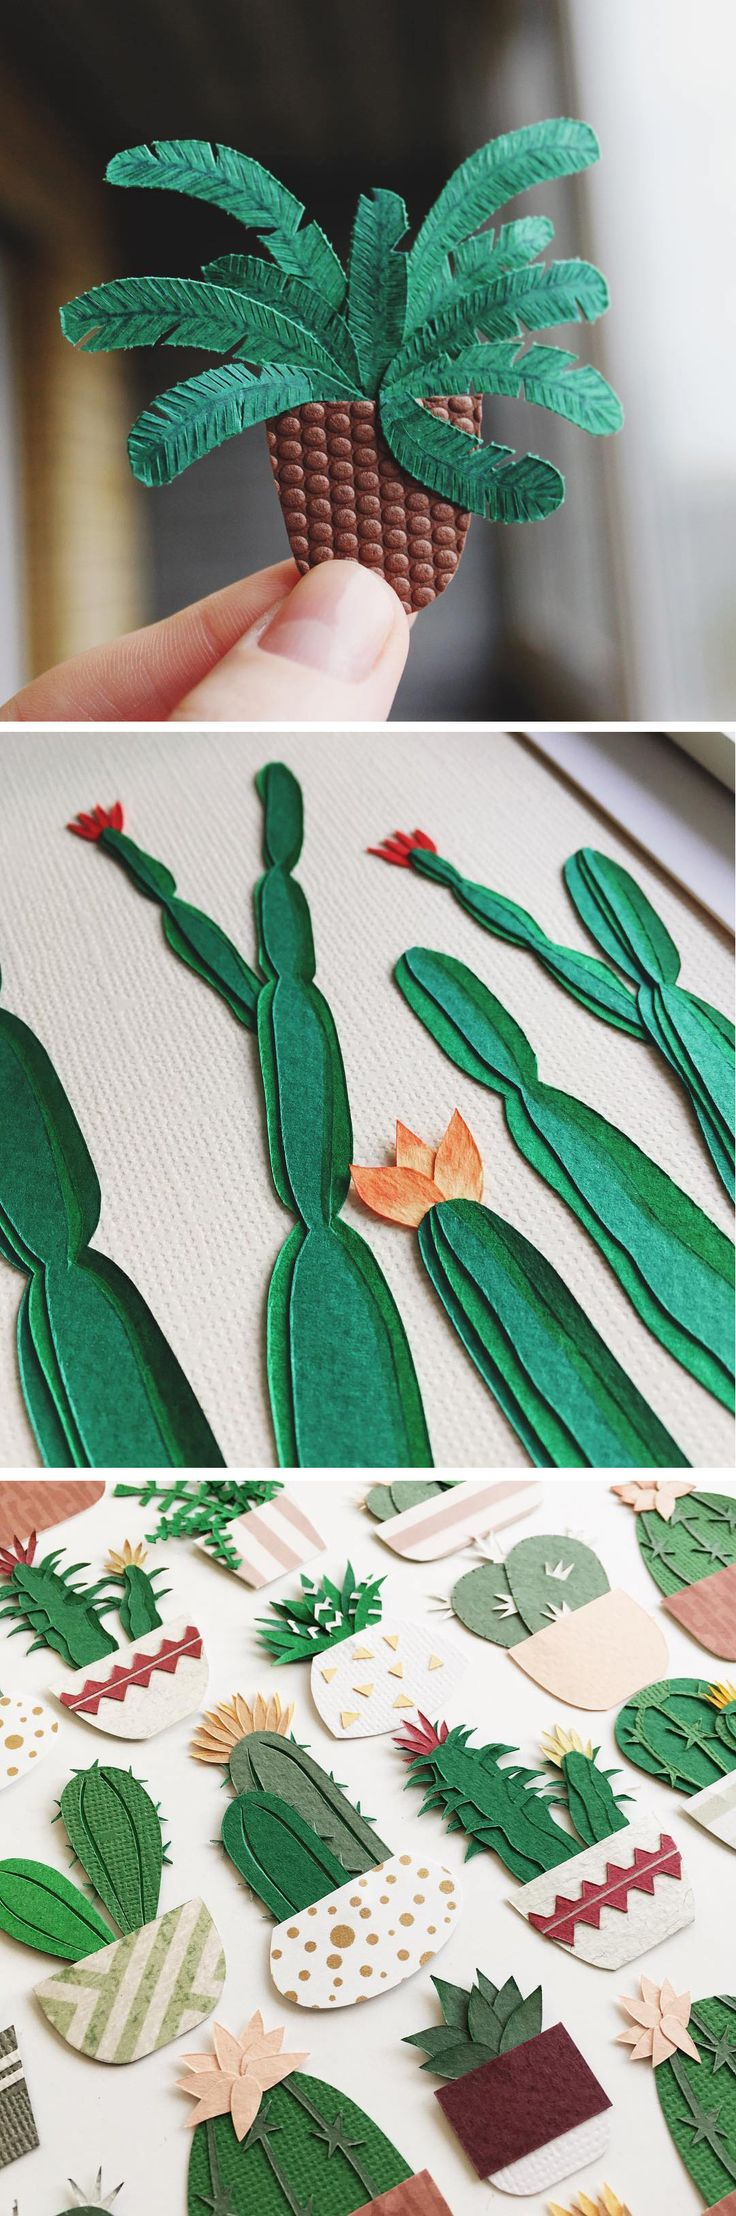 Paper craft cacti by Lissova_craft    paper art | paper plants | papercraft plants | cut paper cactus